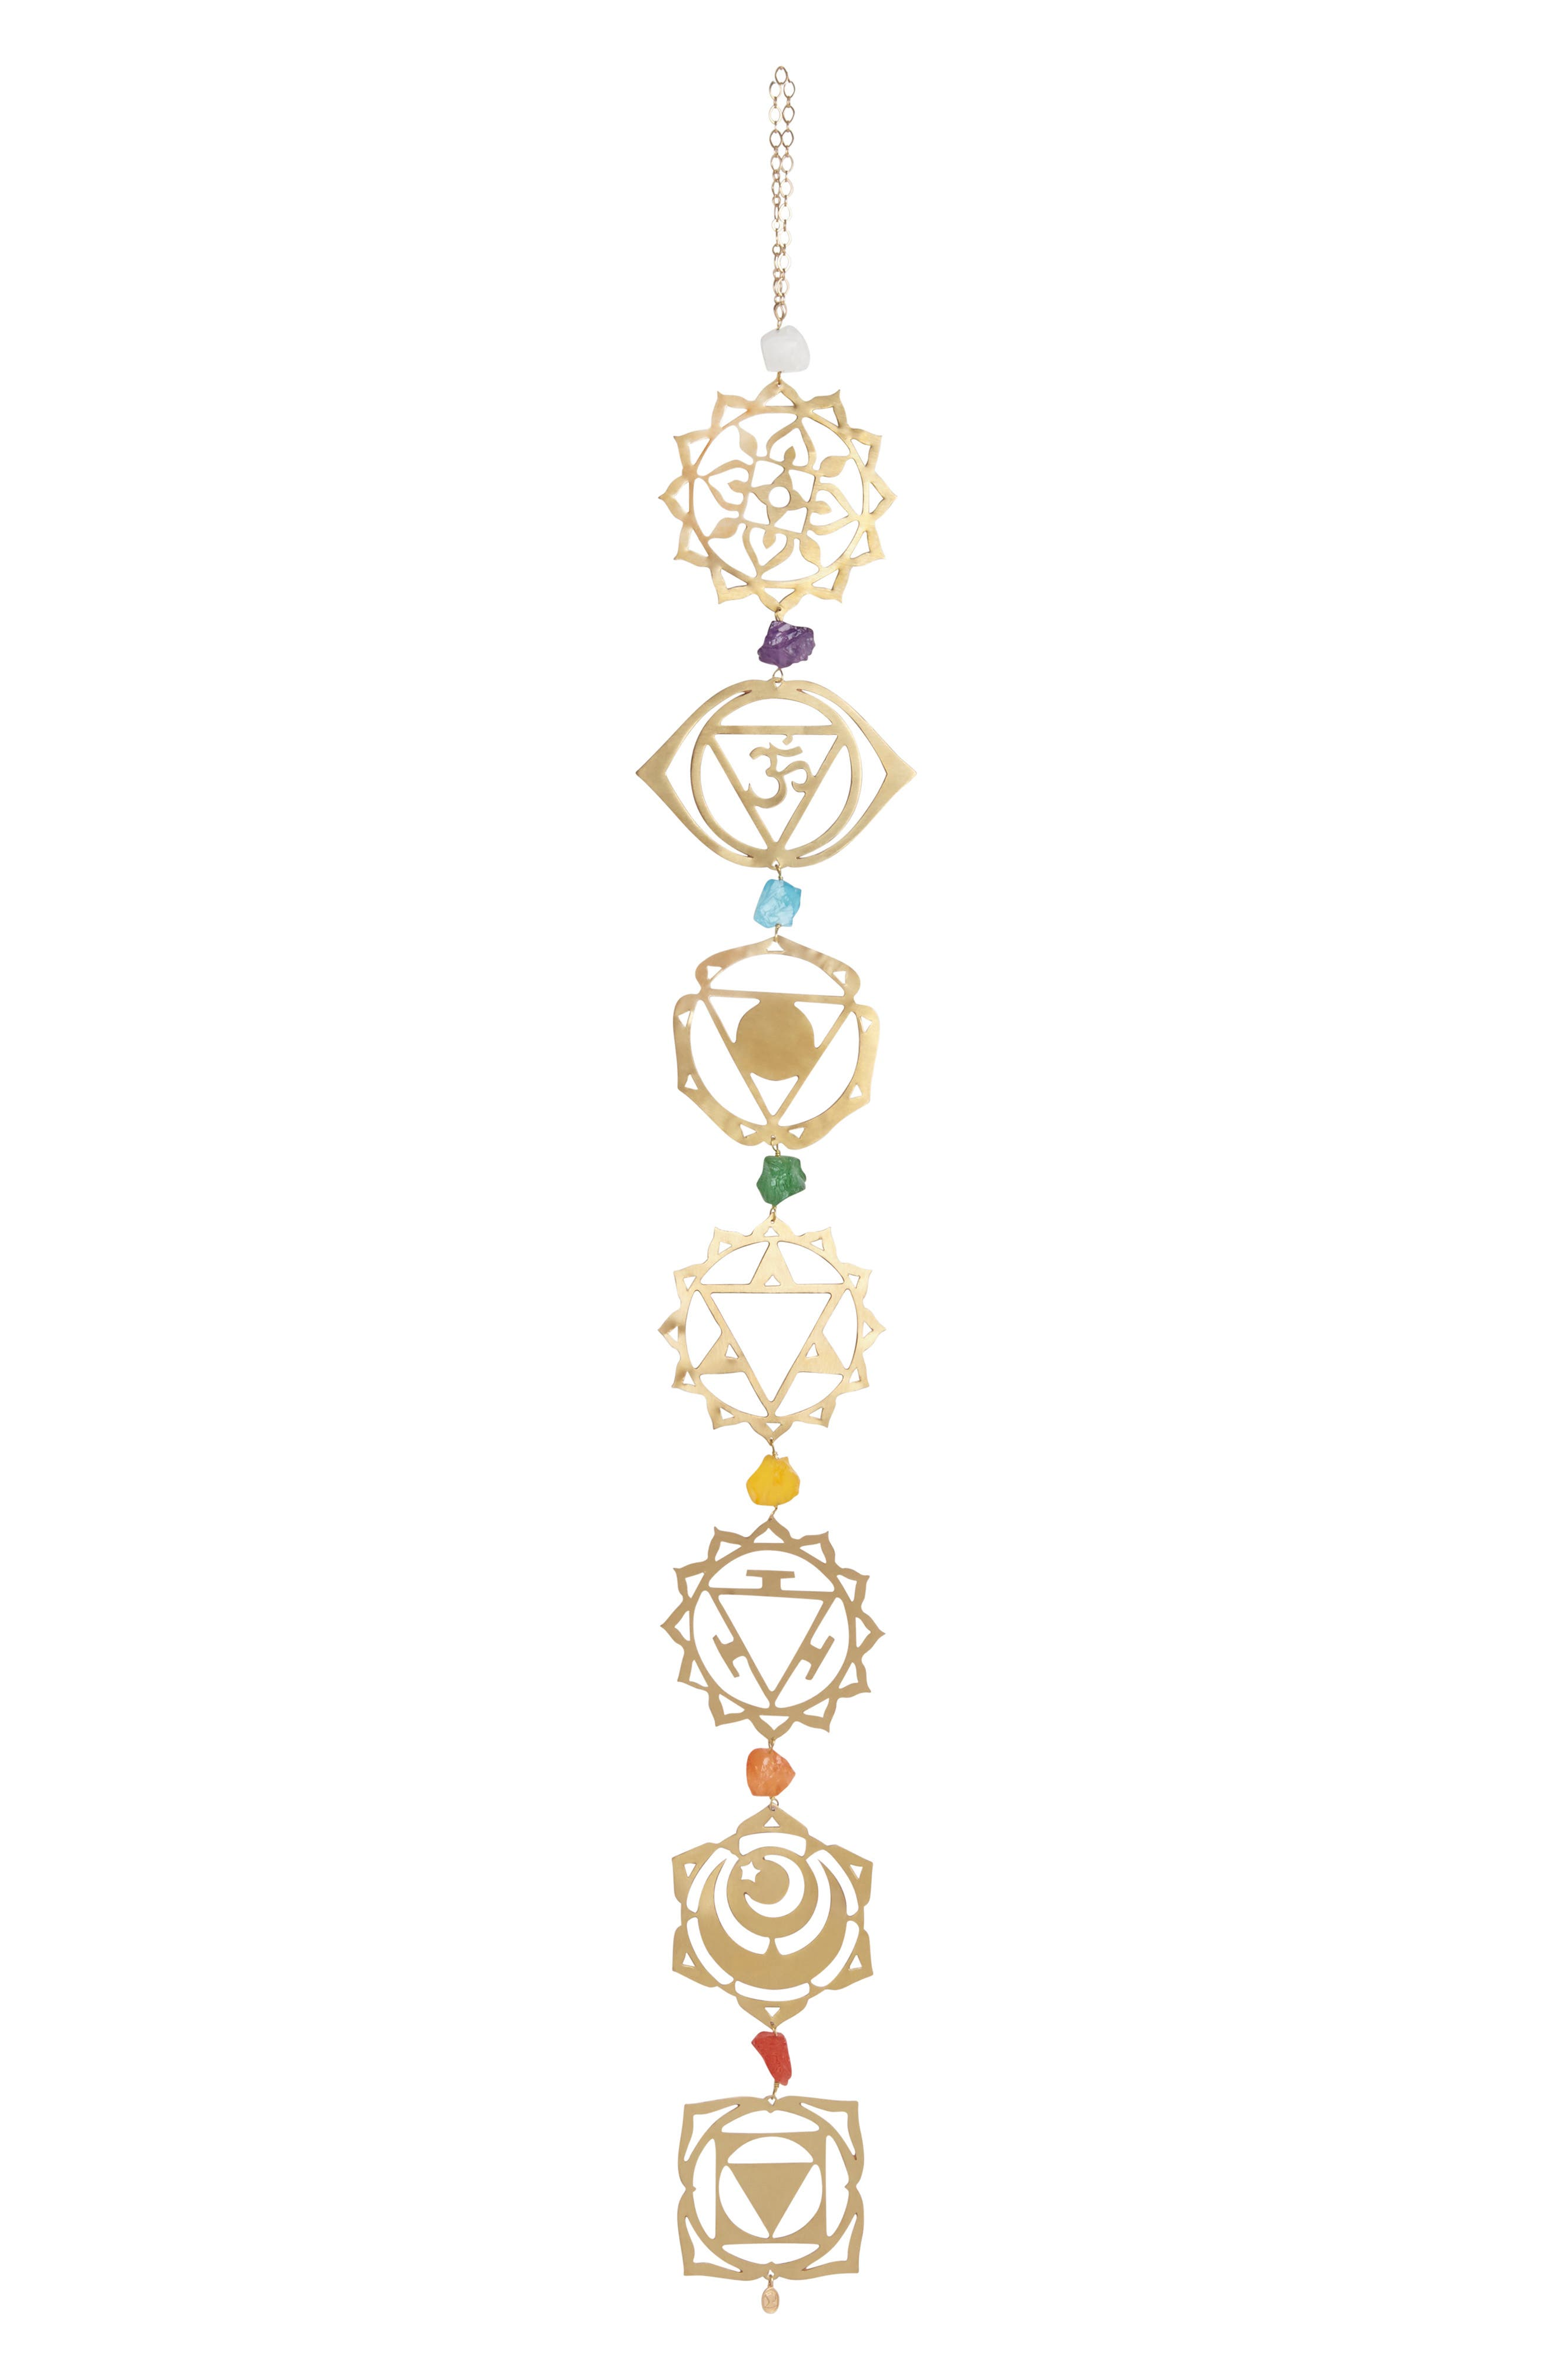 Enhance your home yoga practice or bring harmonious balance to your decor with handcrafted chimes that incorporate the colors and symbols of your chakras. Inspired by ancient traditions of chakra and yoga practice, gazing at the design is meant to heighten your sense of confidence, inspiration and identity. Style Name: Ariana Ost Chakra Yoga Wall Hanging. Style Number: 5747774. Available in stores.